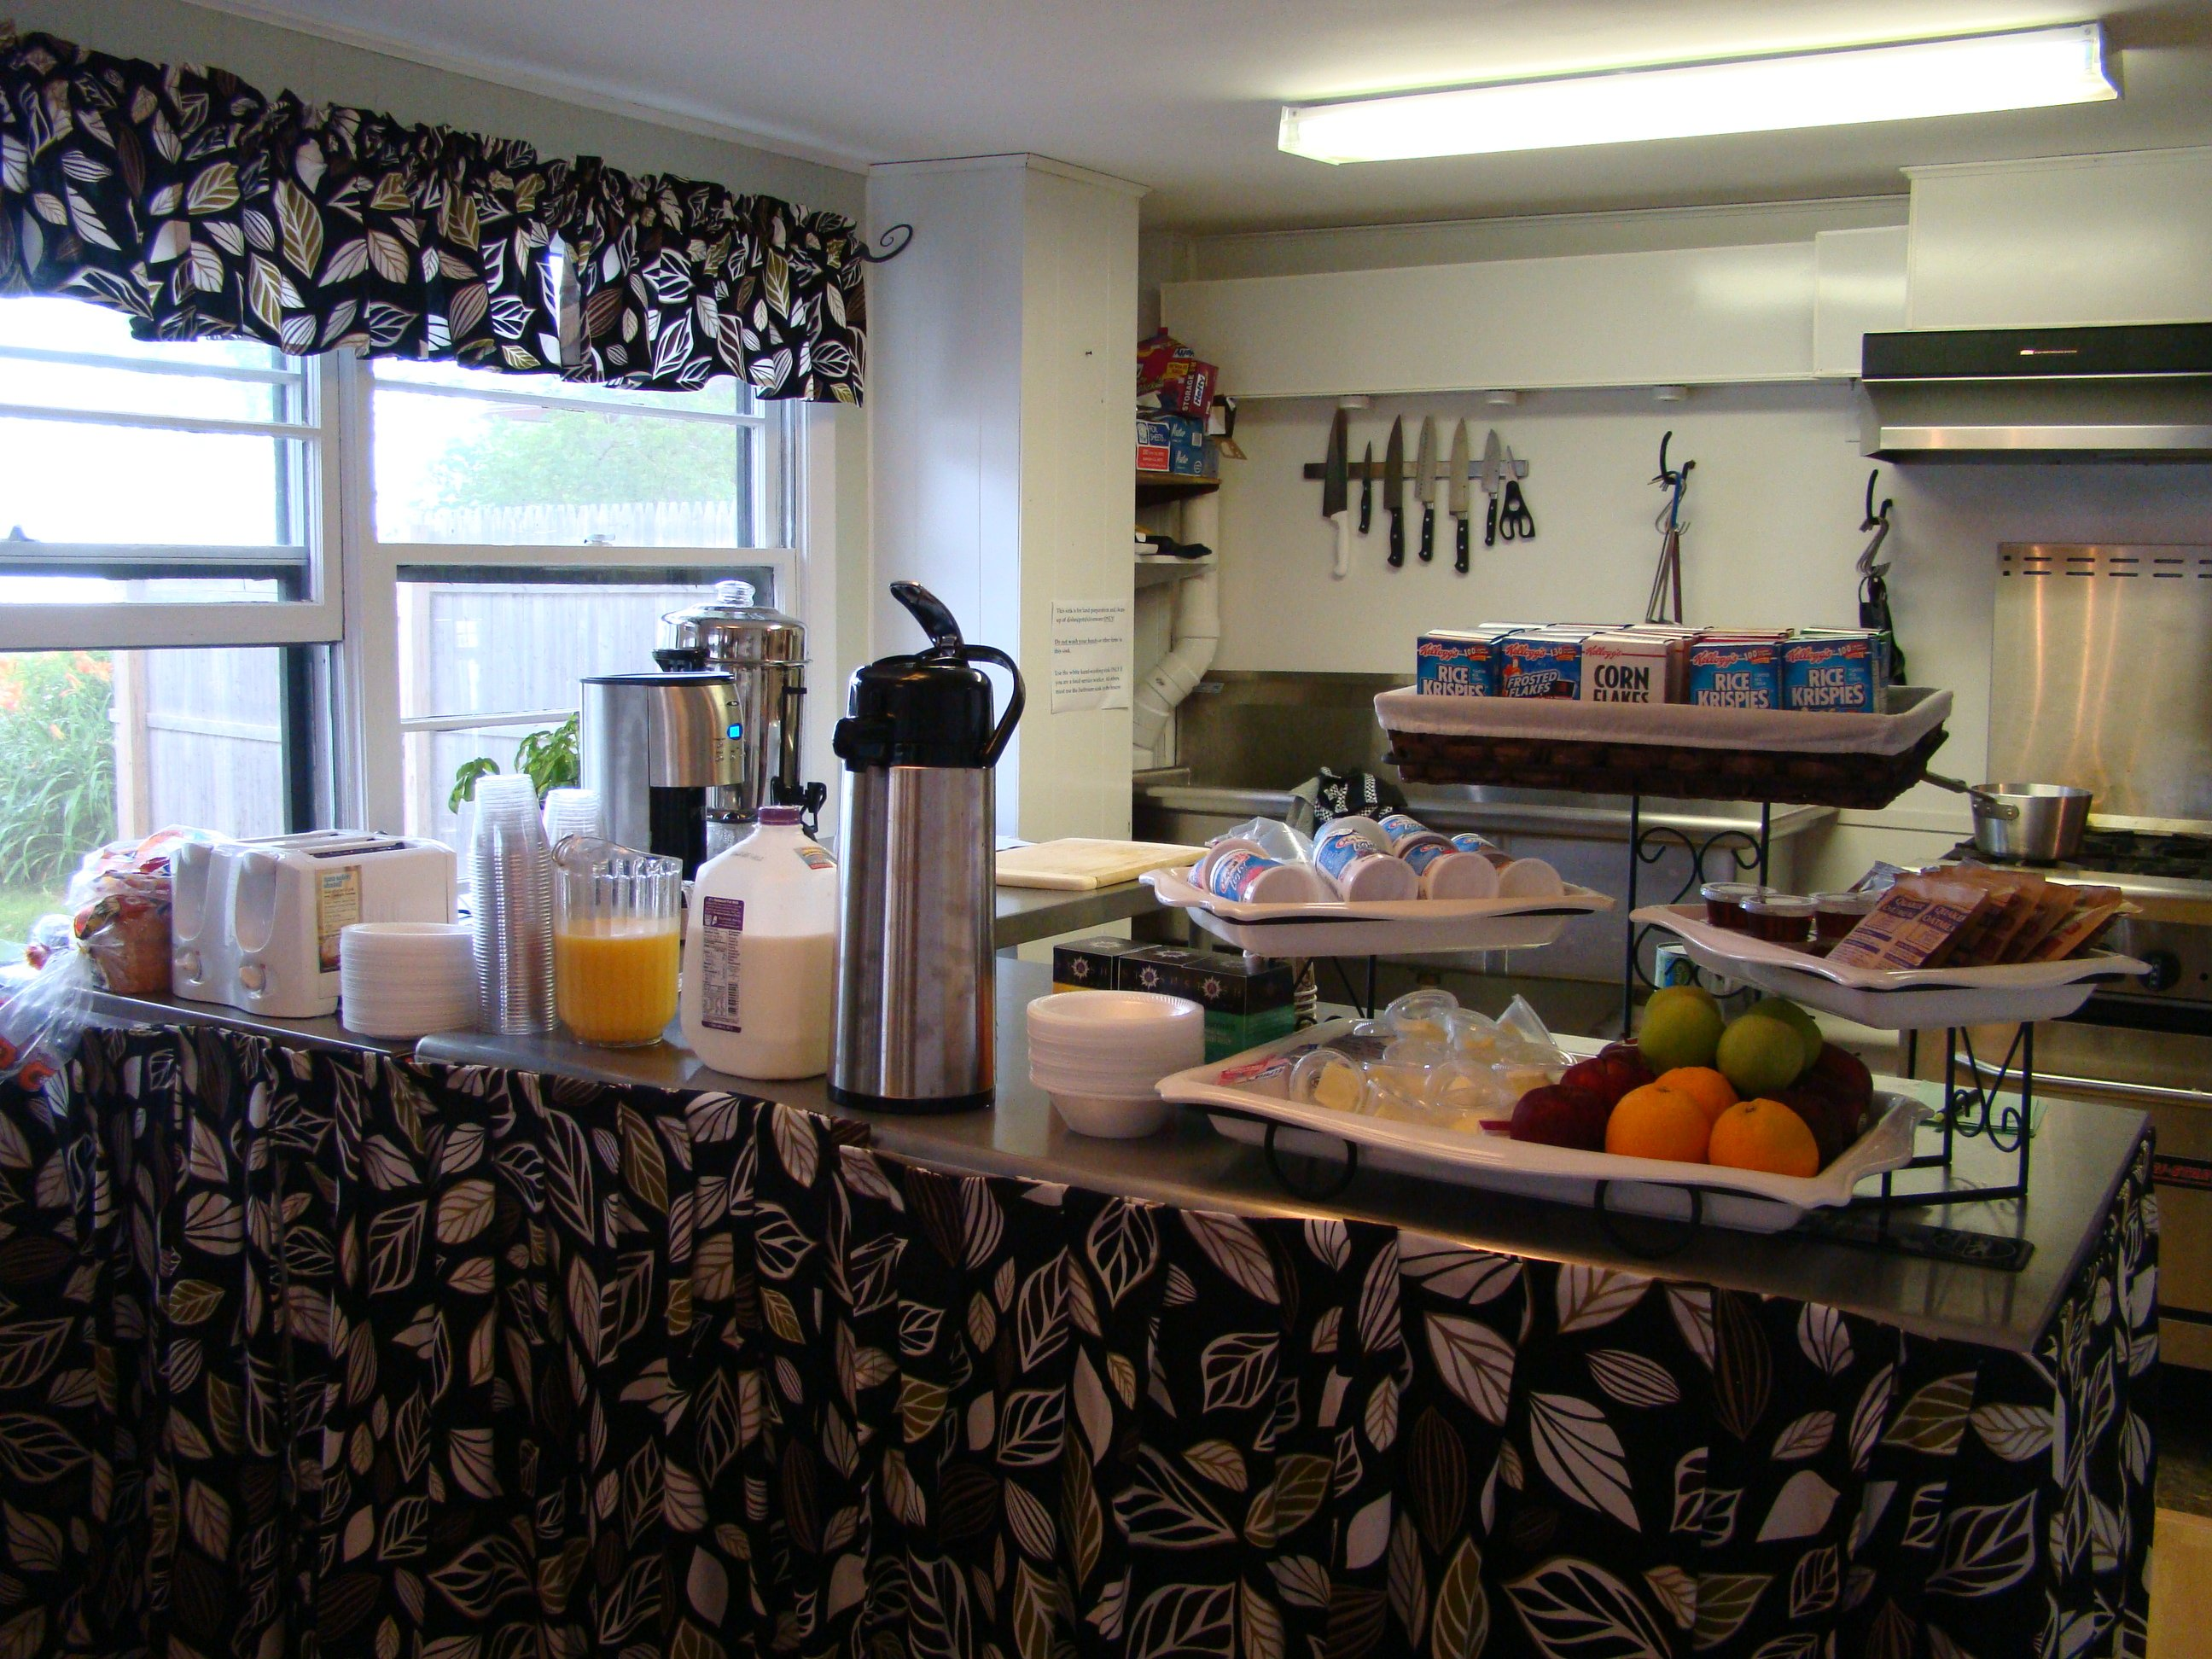 Interior of Bistro where we offer free daily continental breakfast